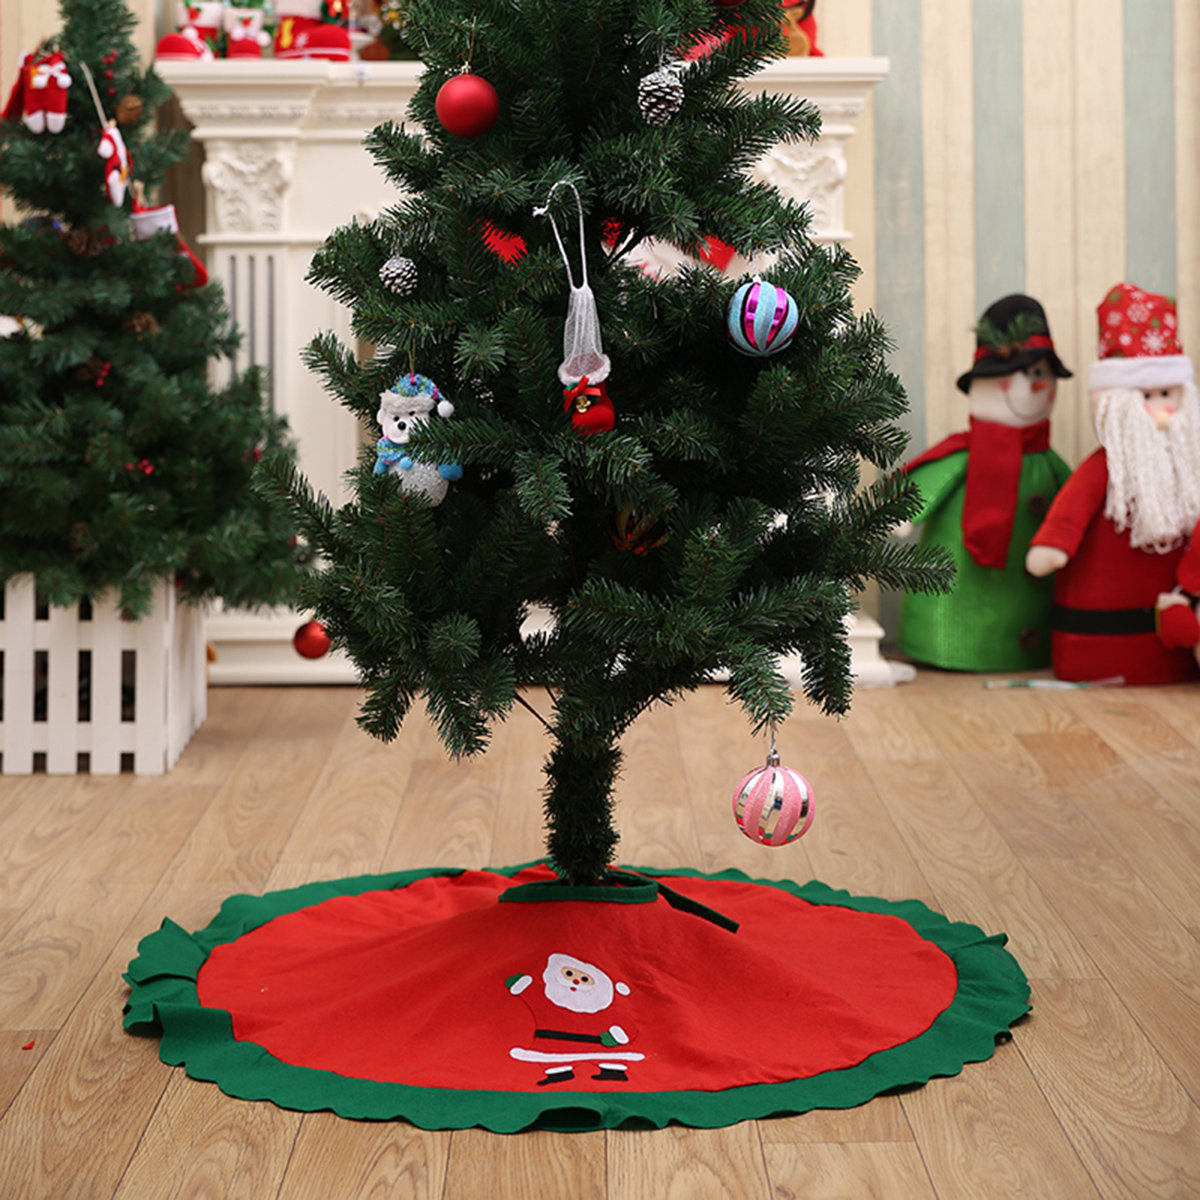 Hot-sale designer Christmas Decorations Tree Skirt Christmas Tress Apron Fabric Christmas Gift Online - NewChic